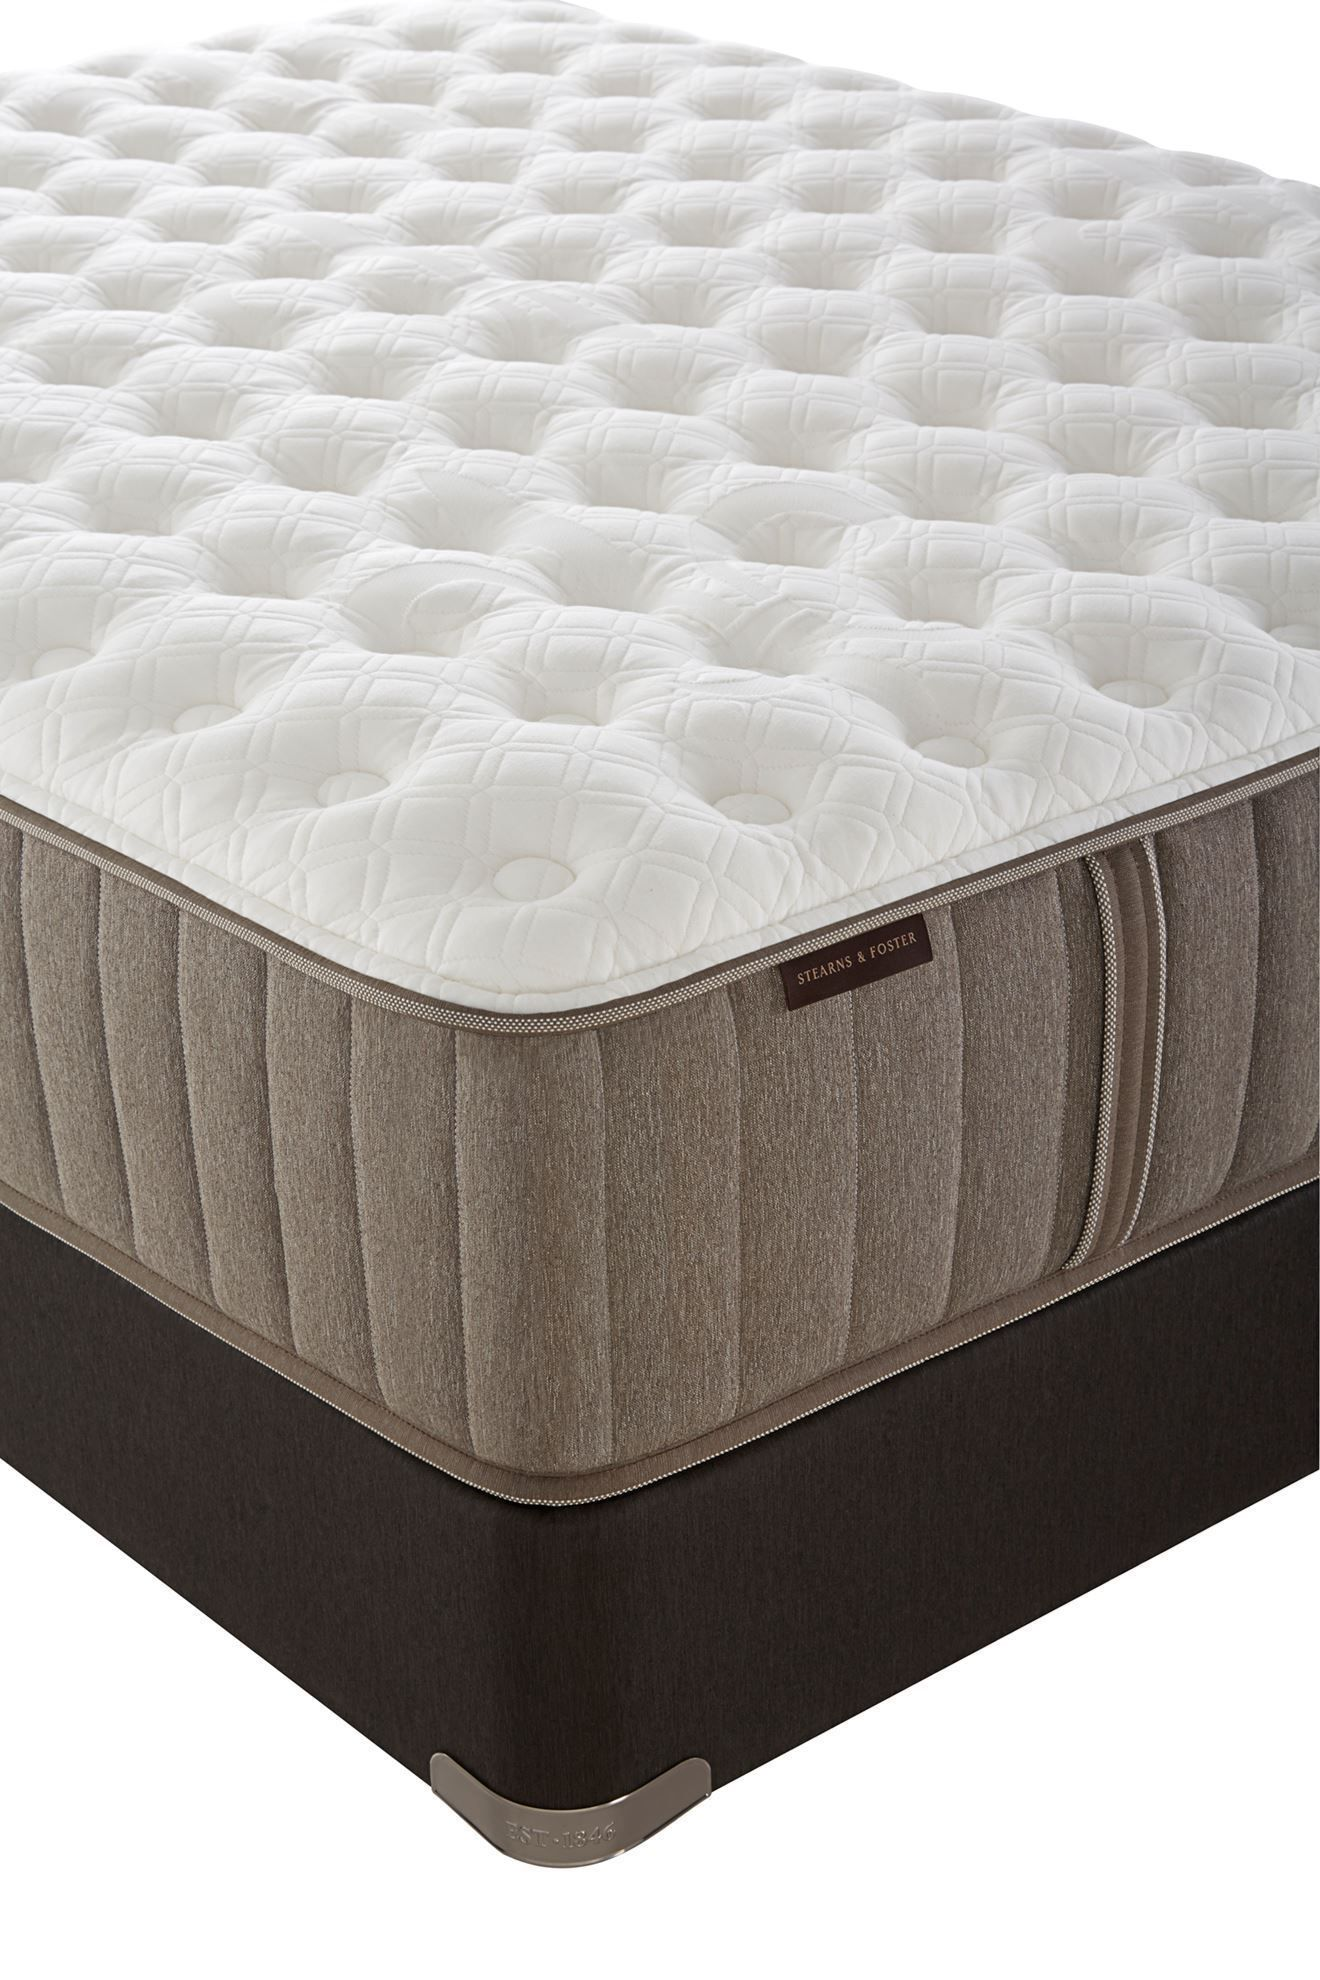 Picture of Stearns & Foster Scarborough Plush Pillowtop Twin XL Mattress Only